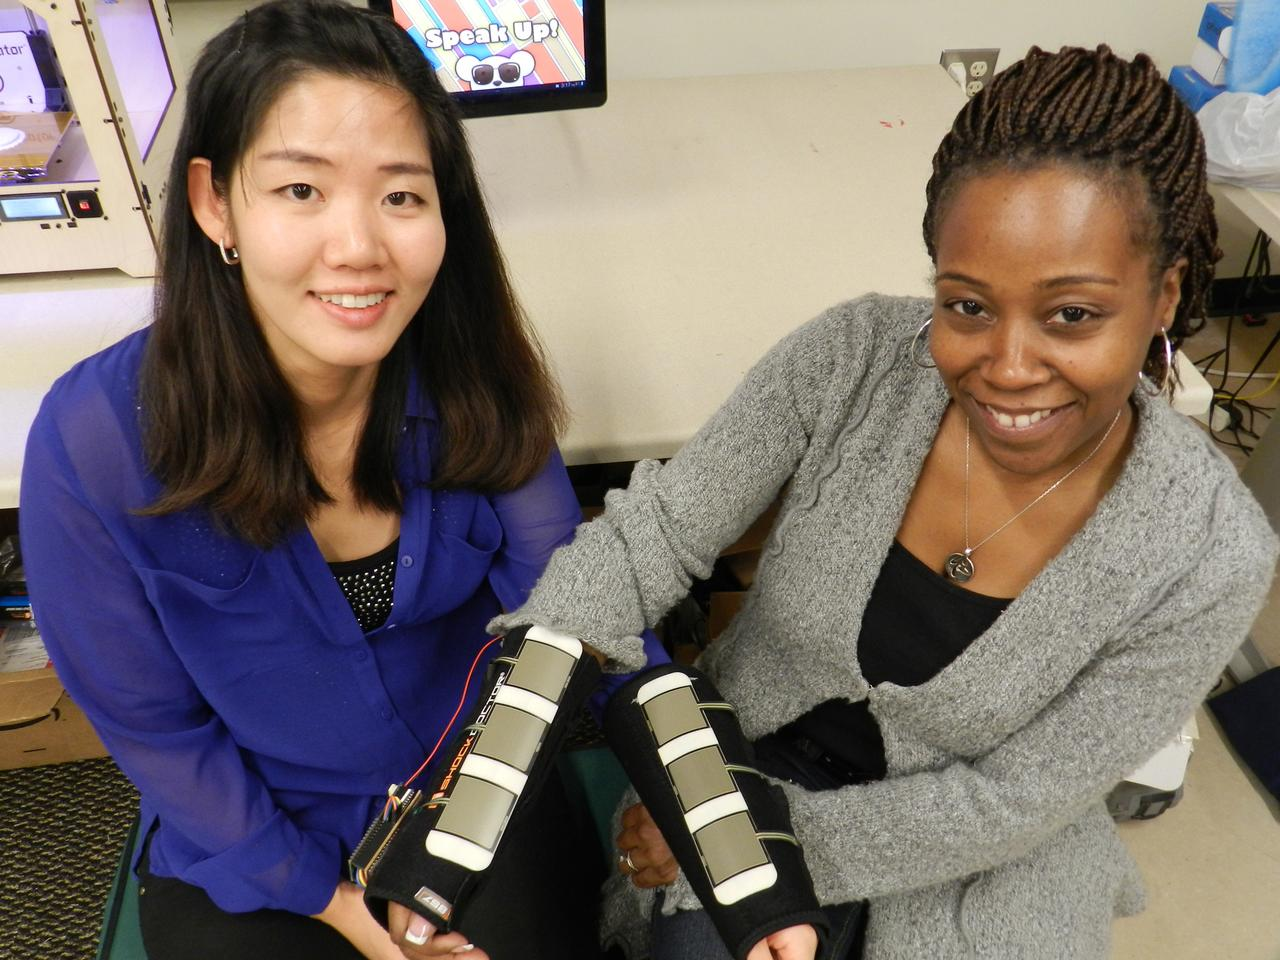 Ayanna Howard (right) and Hae Won Park (left) model the Access4Kids device that allows the motor impaired to control a tablet